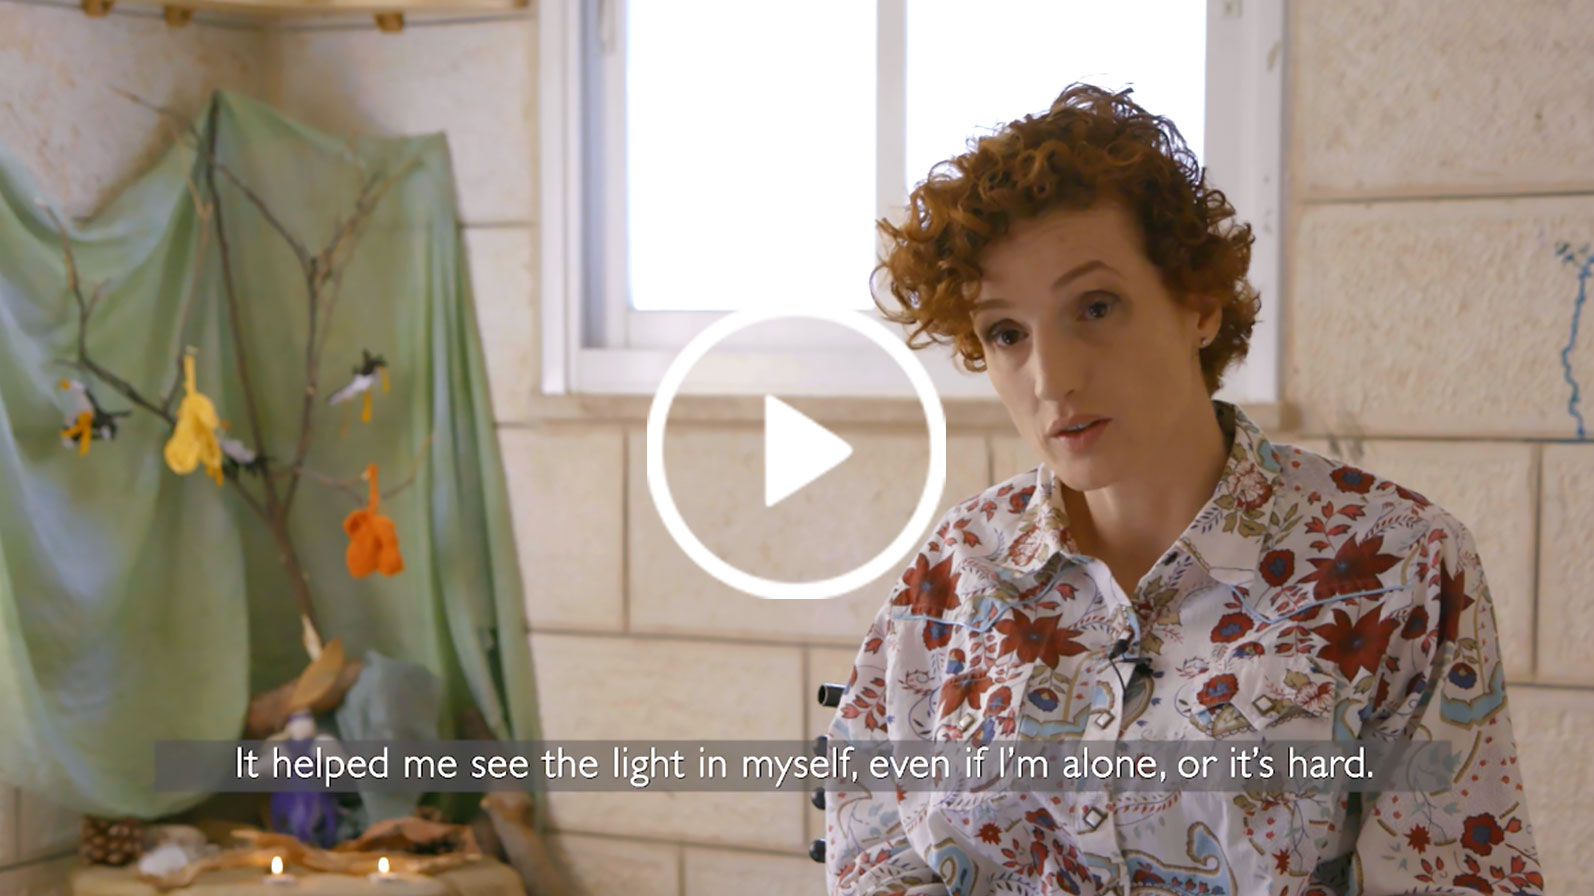 house-of-hope-waldorf-video-tn.jpg